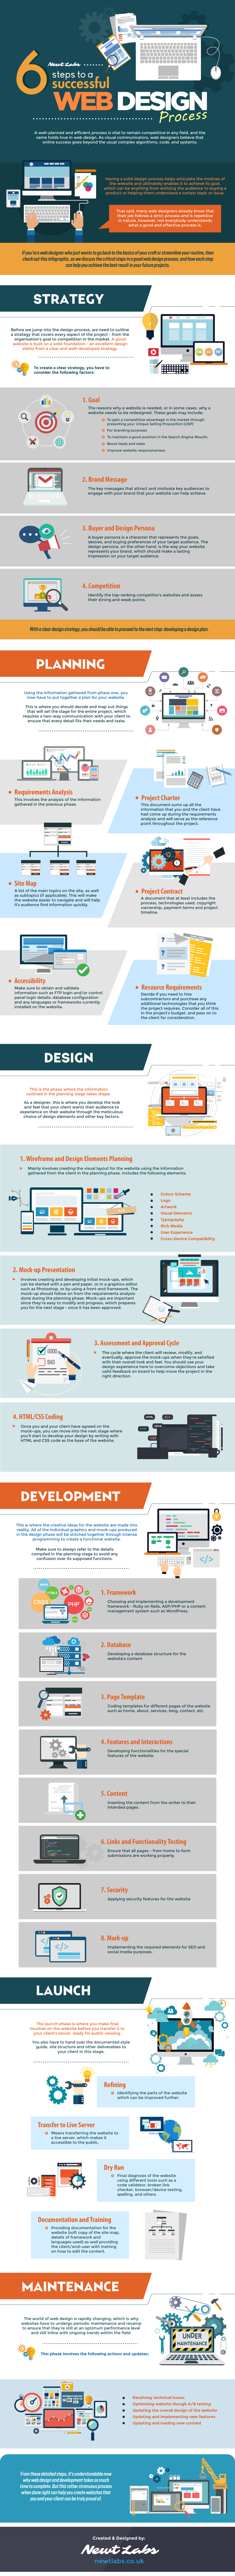 6 Steps To A Successful Web Design Process